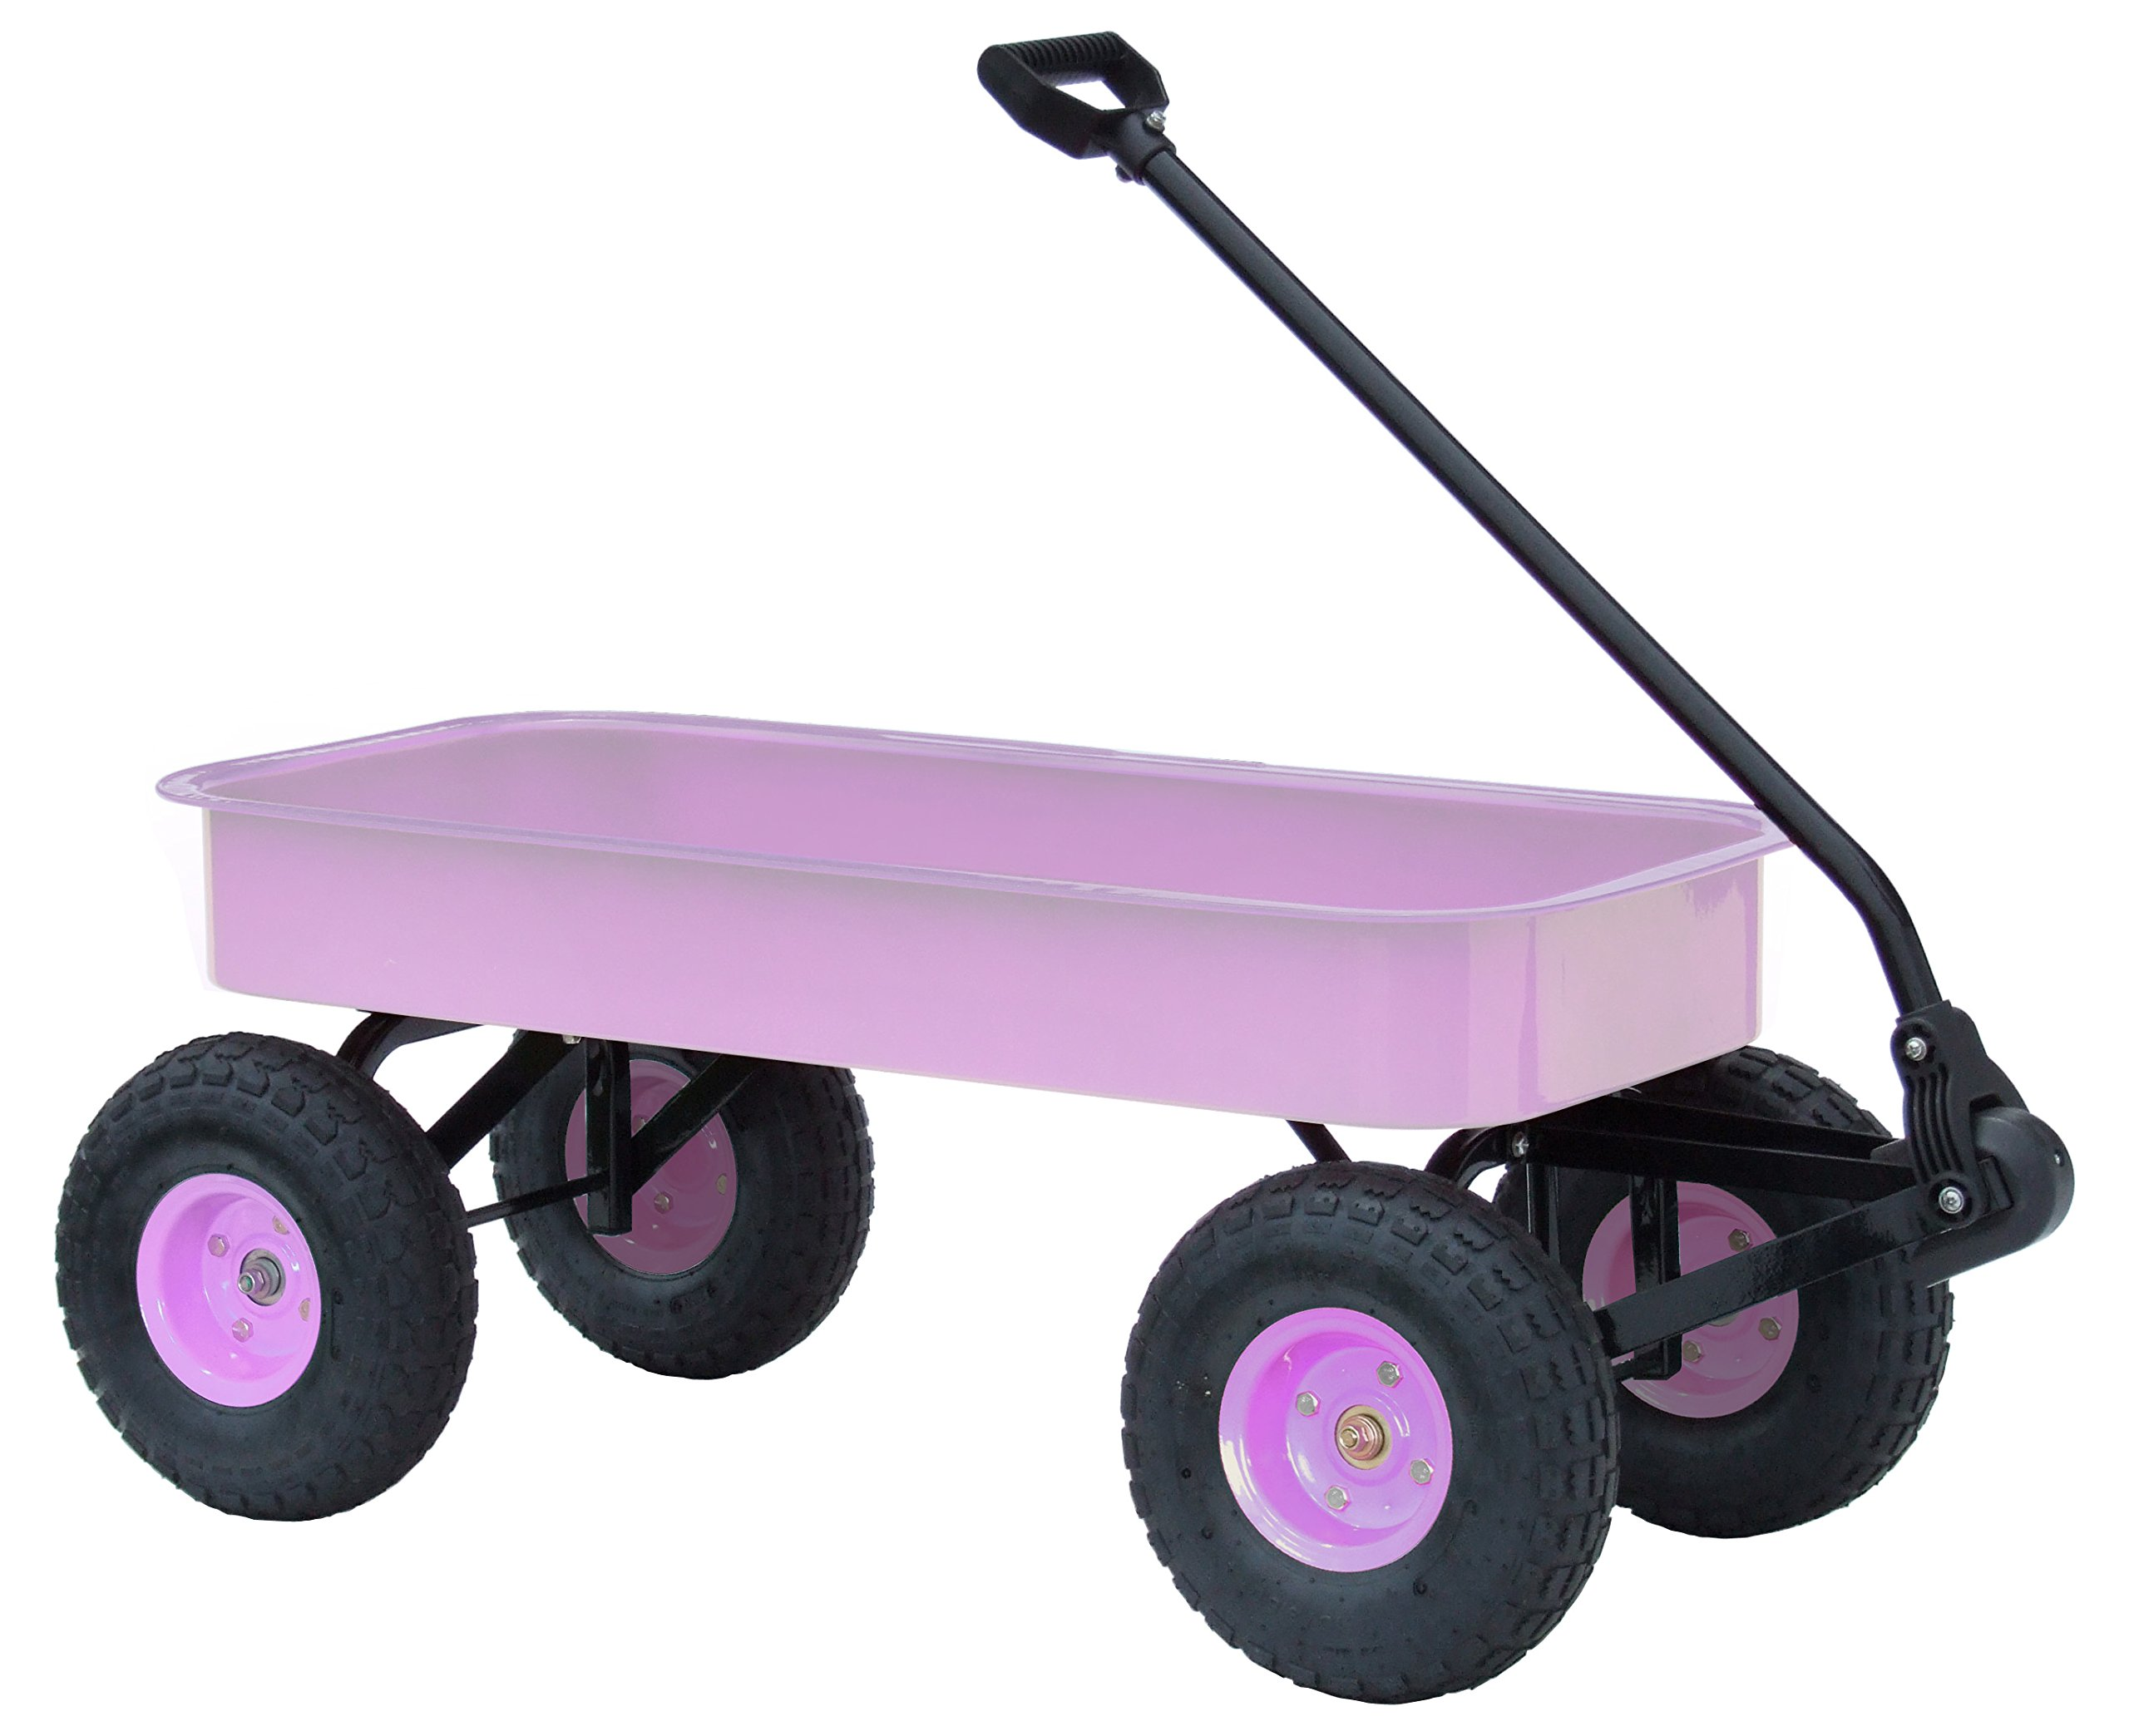 Morgan Cycle Classic Steel Wagon with Rubber Air Tires, Lavendar